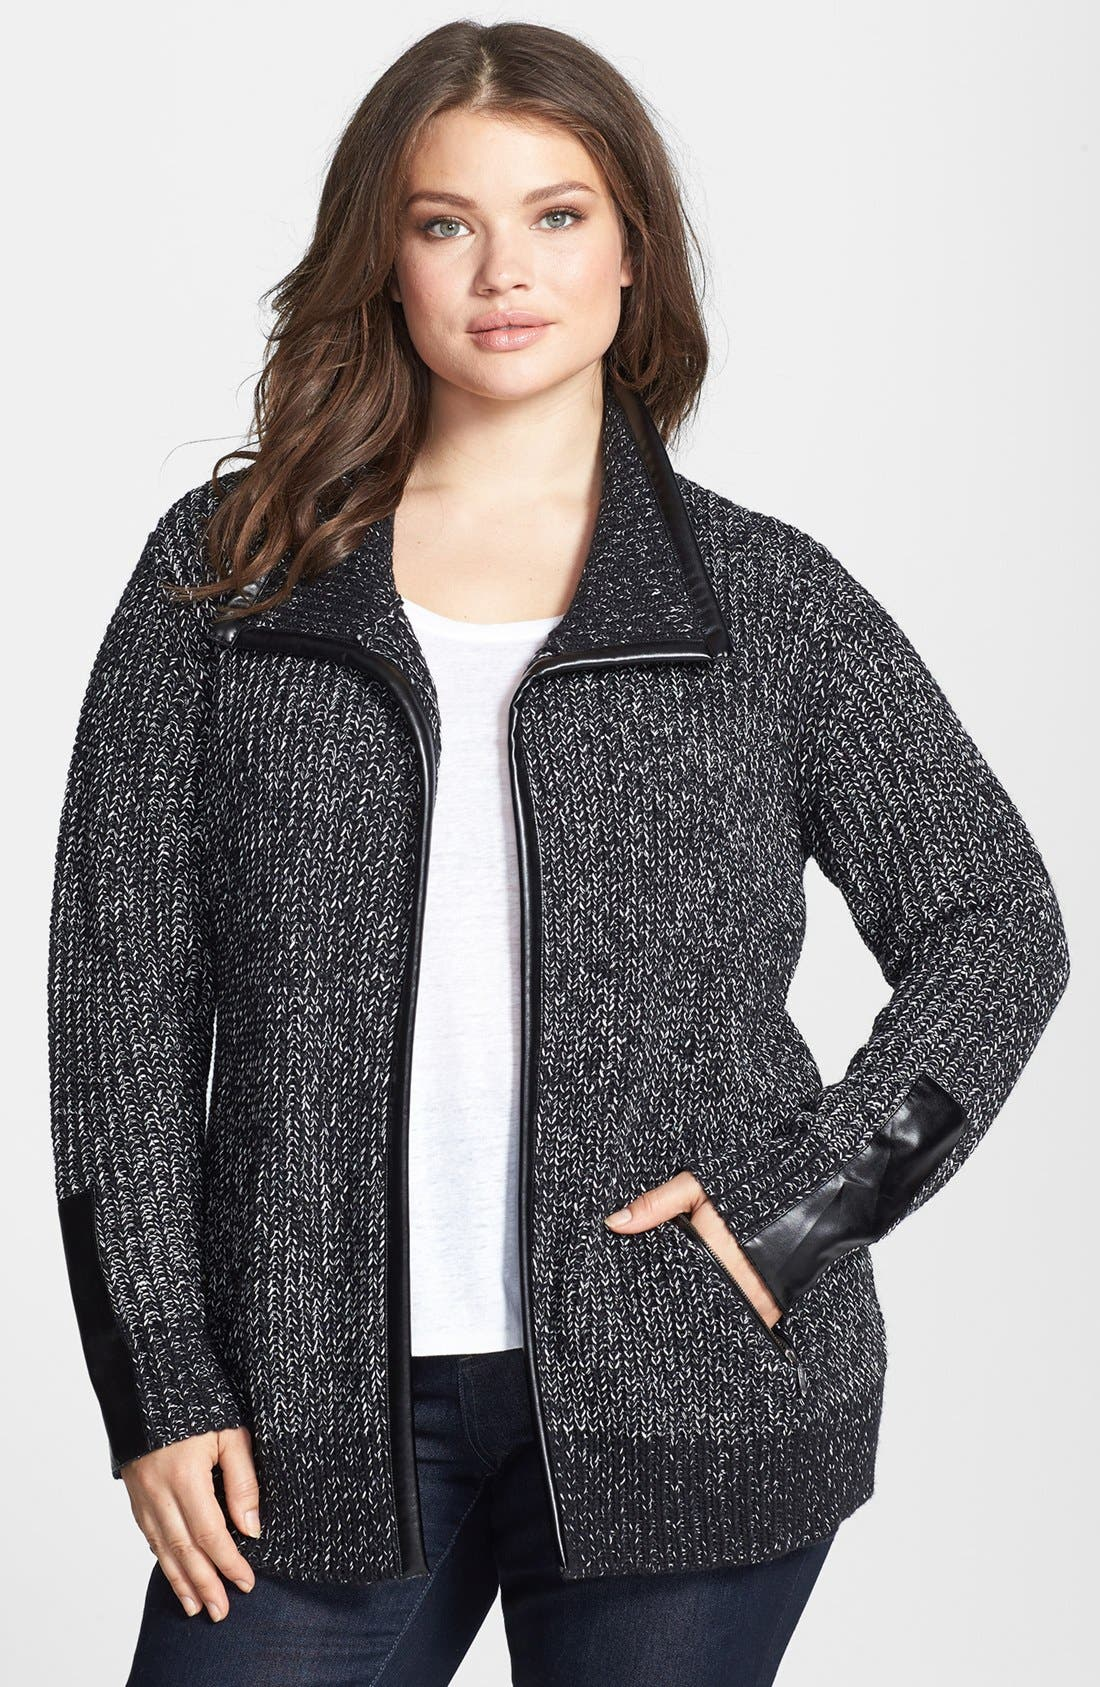 Alternate Image 1 Selected - Sejour Faux Leather Trim Open Front Knit Jacket (Plus Size)